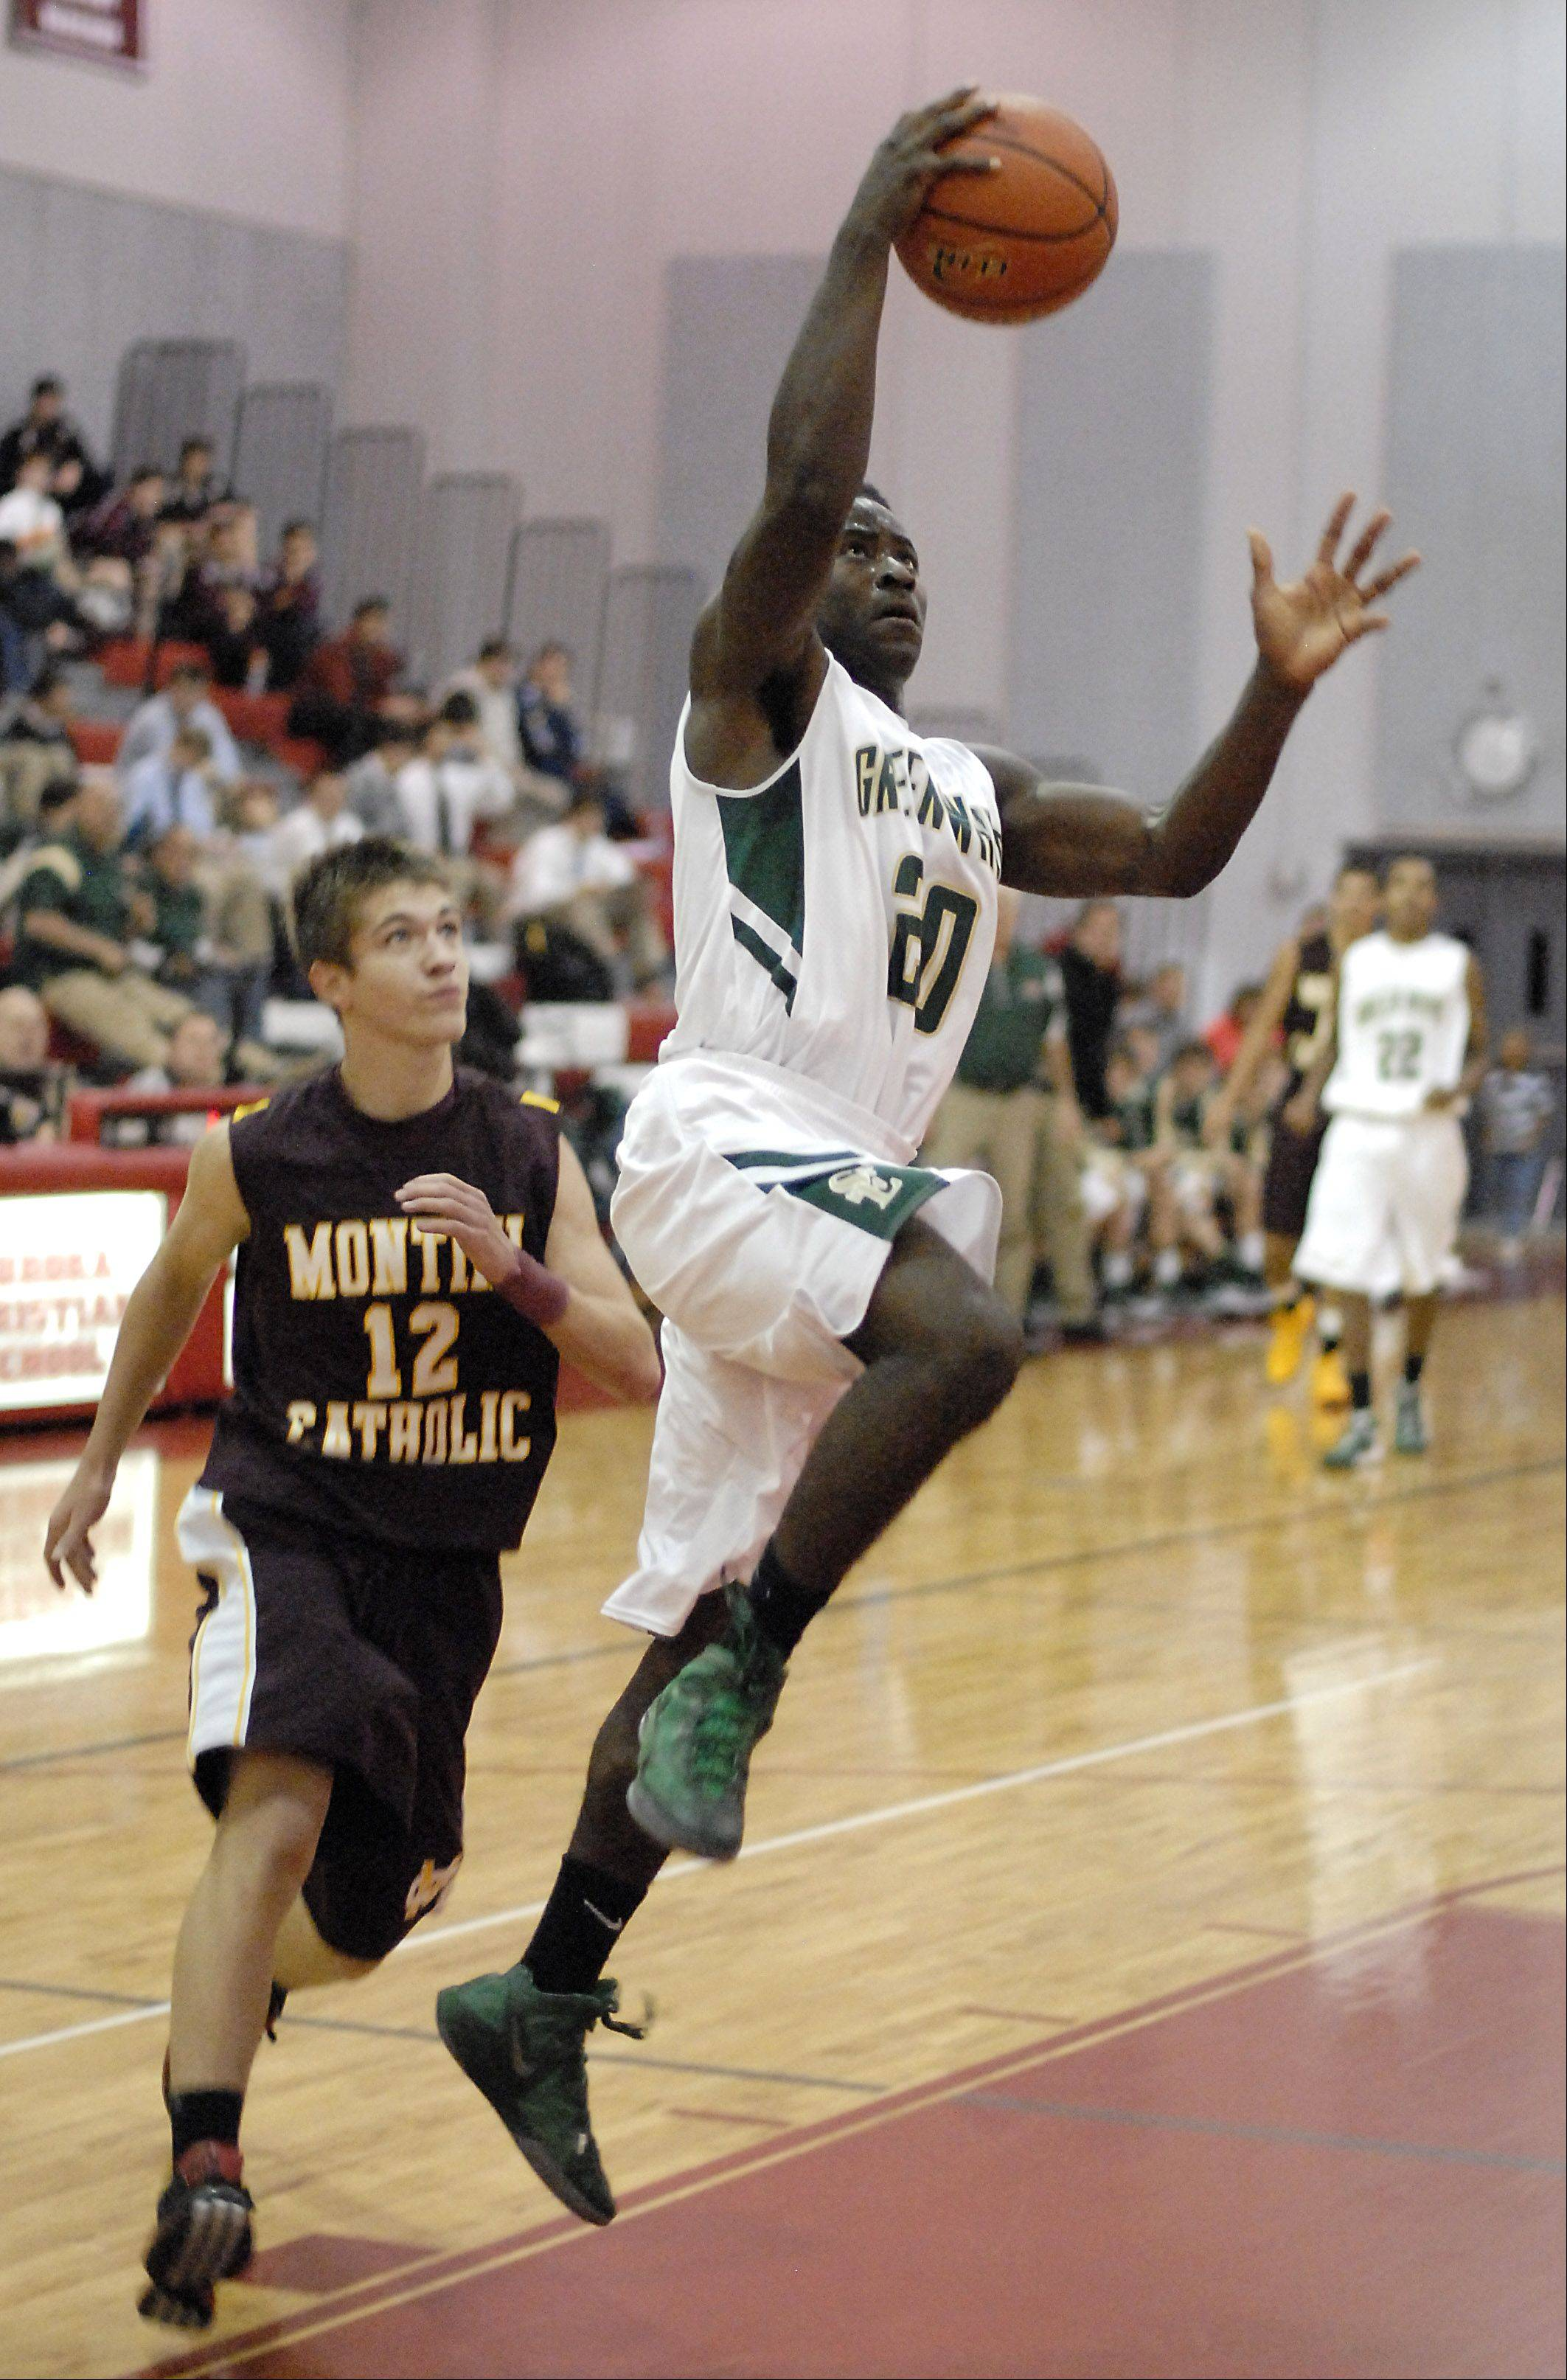 St. Edward's Davontae Elam goes up for a shot past Montini's Jack Brady.